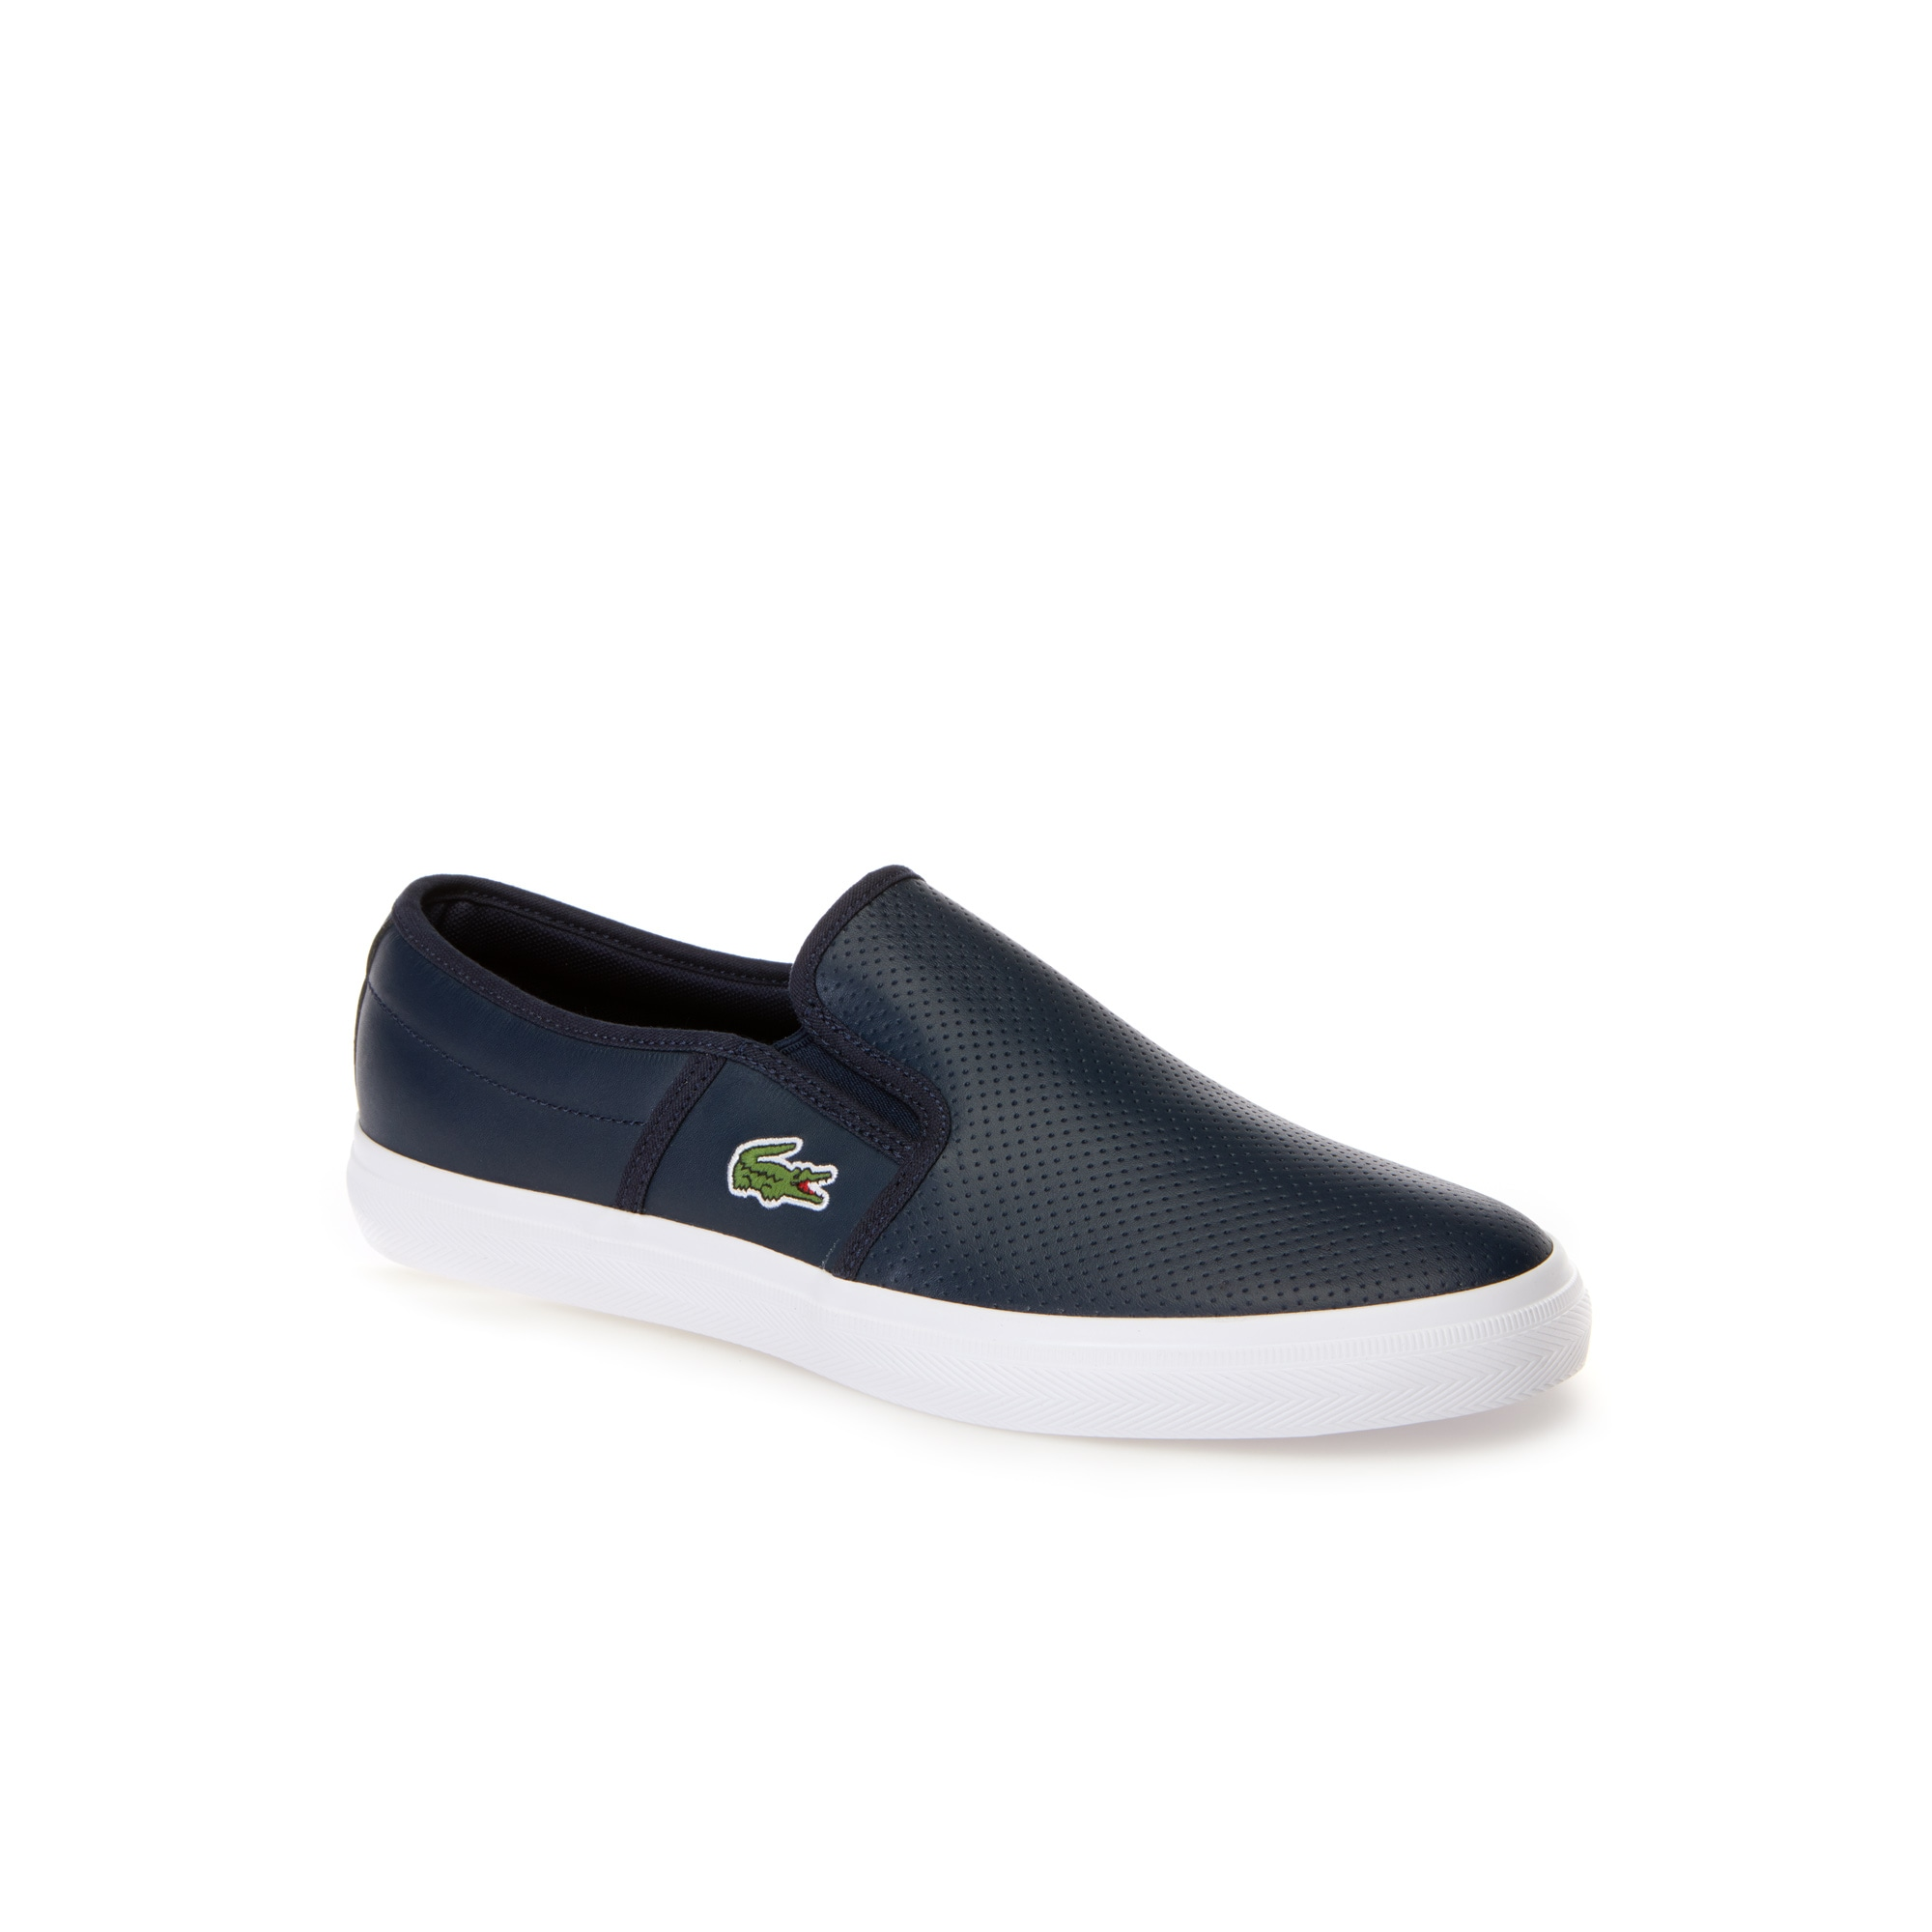 Men's Gazon BL Leather Slip-ons